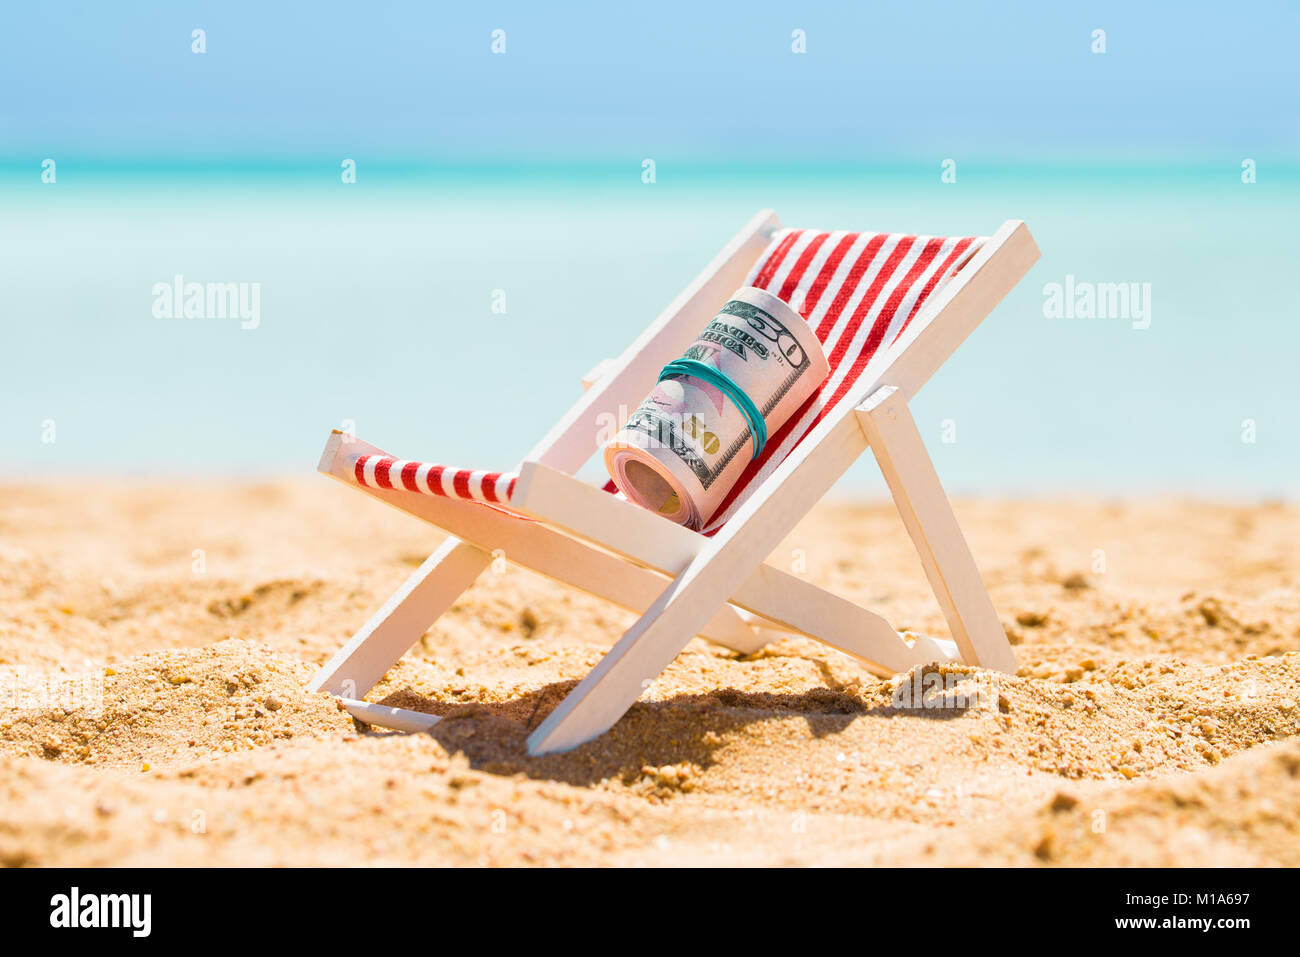 Rolled Up Bundle Of Fifty Dollar Banknotes On Miniature Deck Chair At Beach - Stock Image